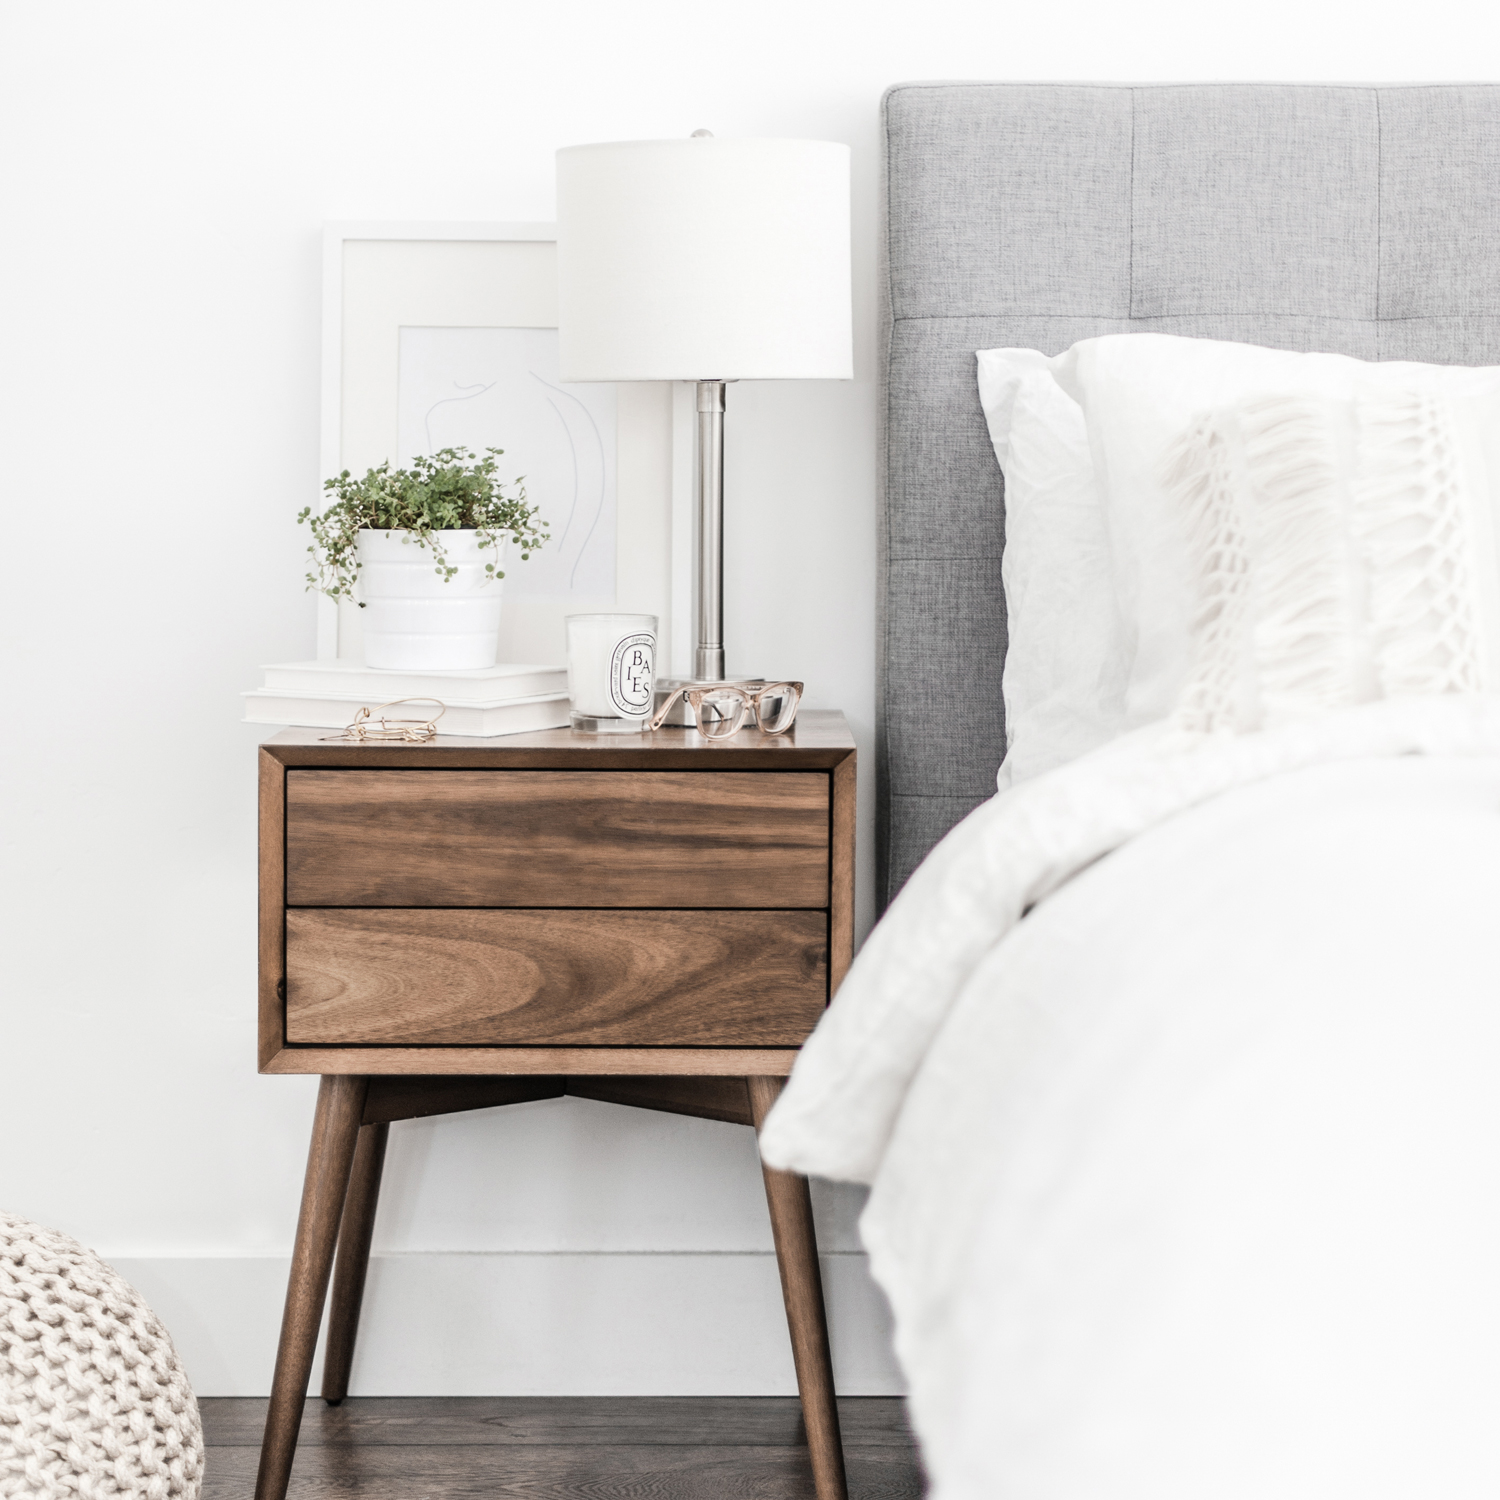 The £99 Online Interior Design Service helps you create a stunning room decor scheme without the expense of an interior designer. For £99, I will create moodboards, styling tips, advice on room layout and a comprehensive shopping list of furniture, soft furnishings and accessories.